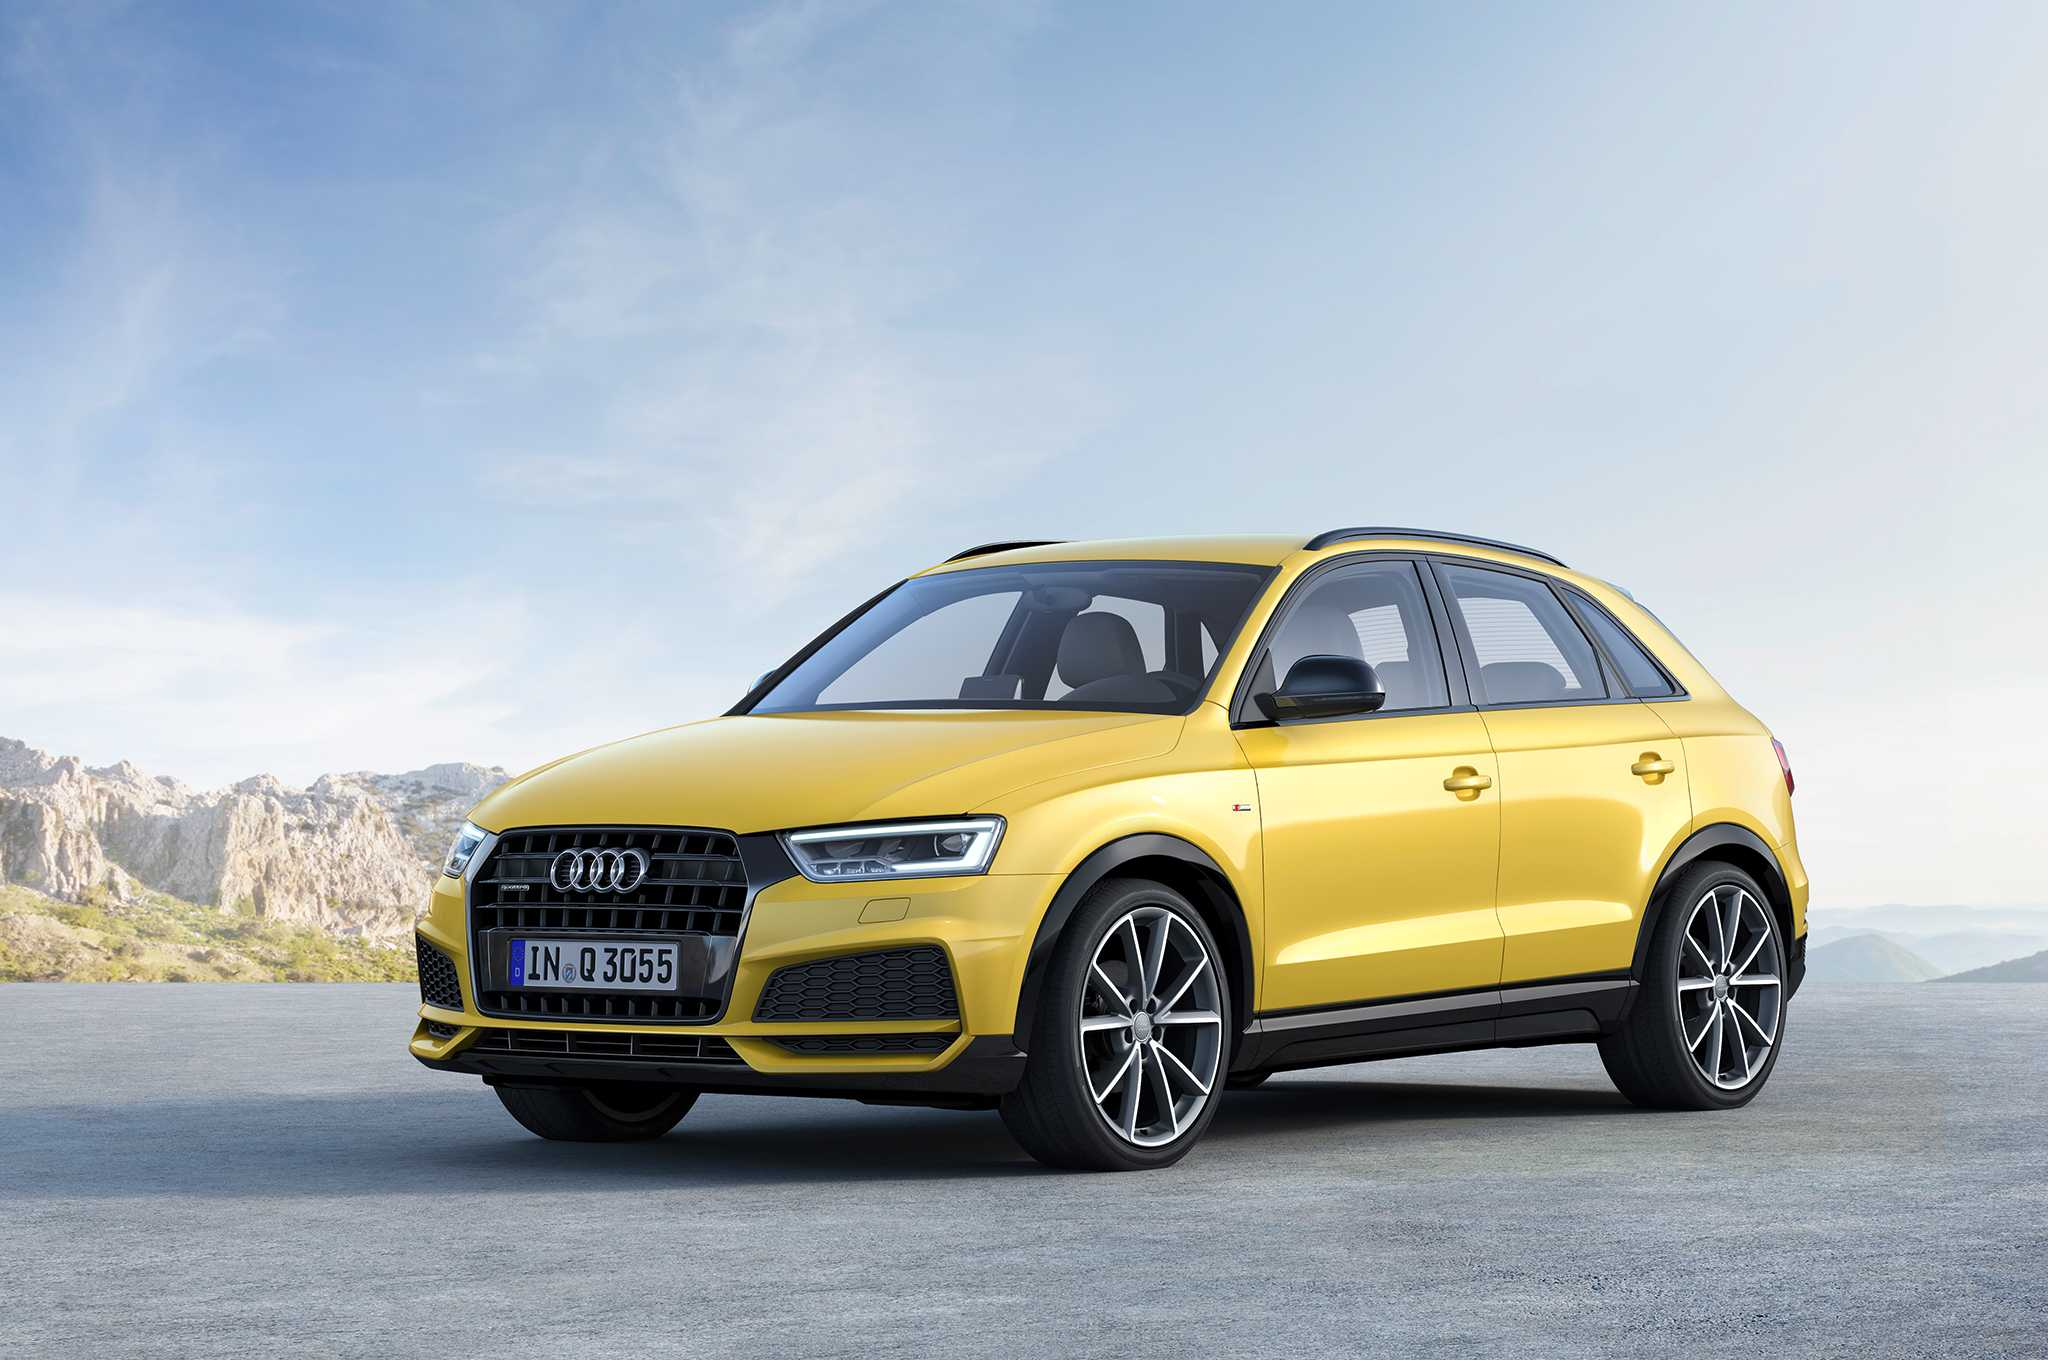 Audi Q3 Crossover Adds S Line Variant for European Buyers